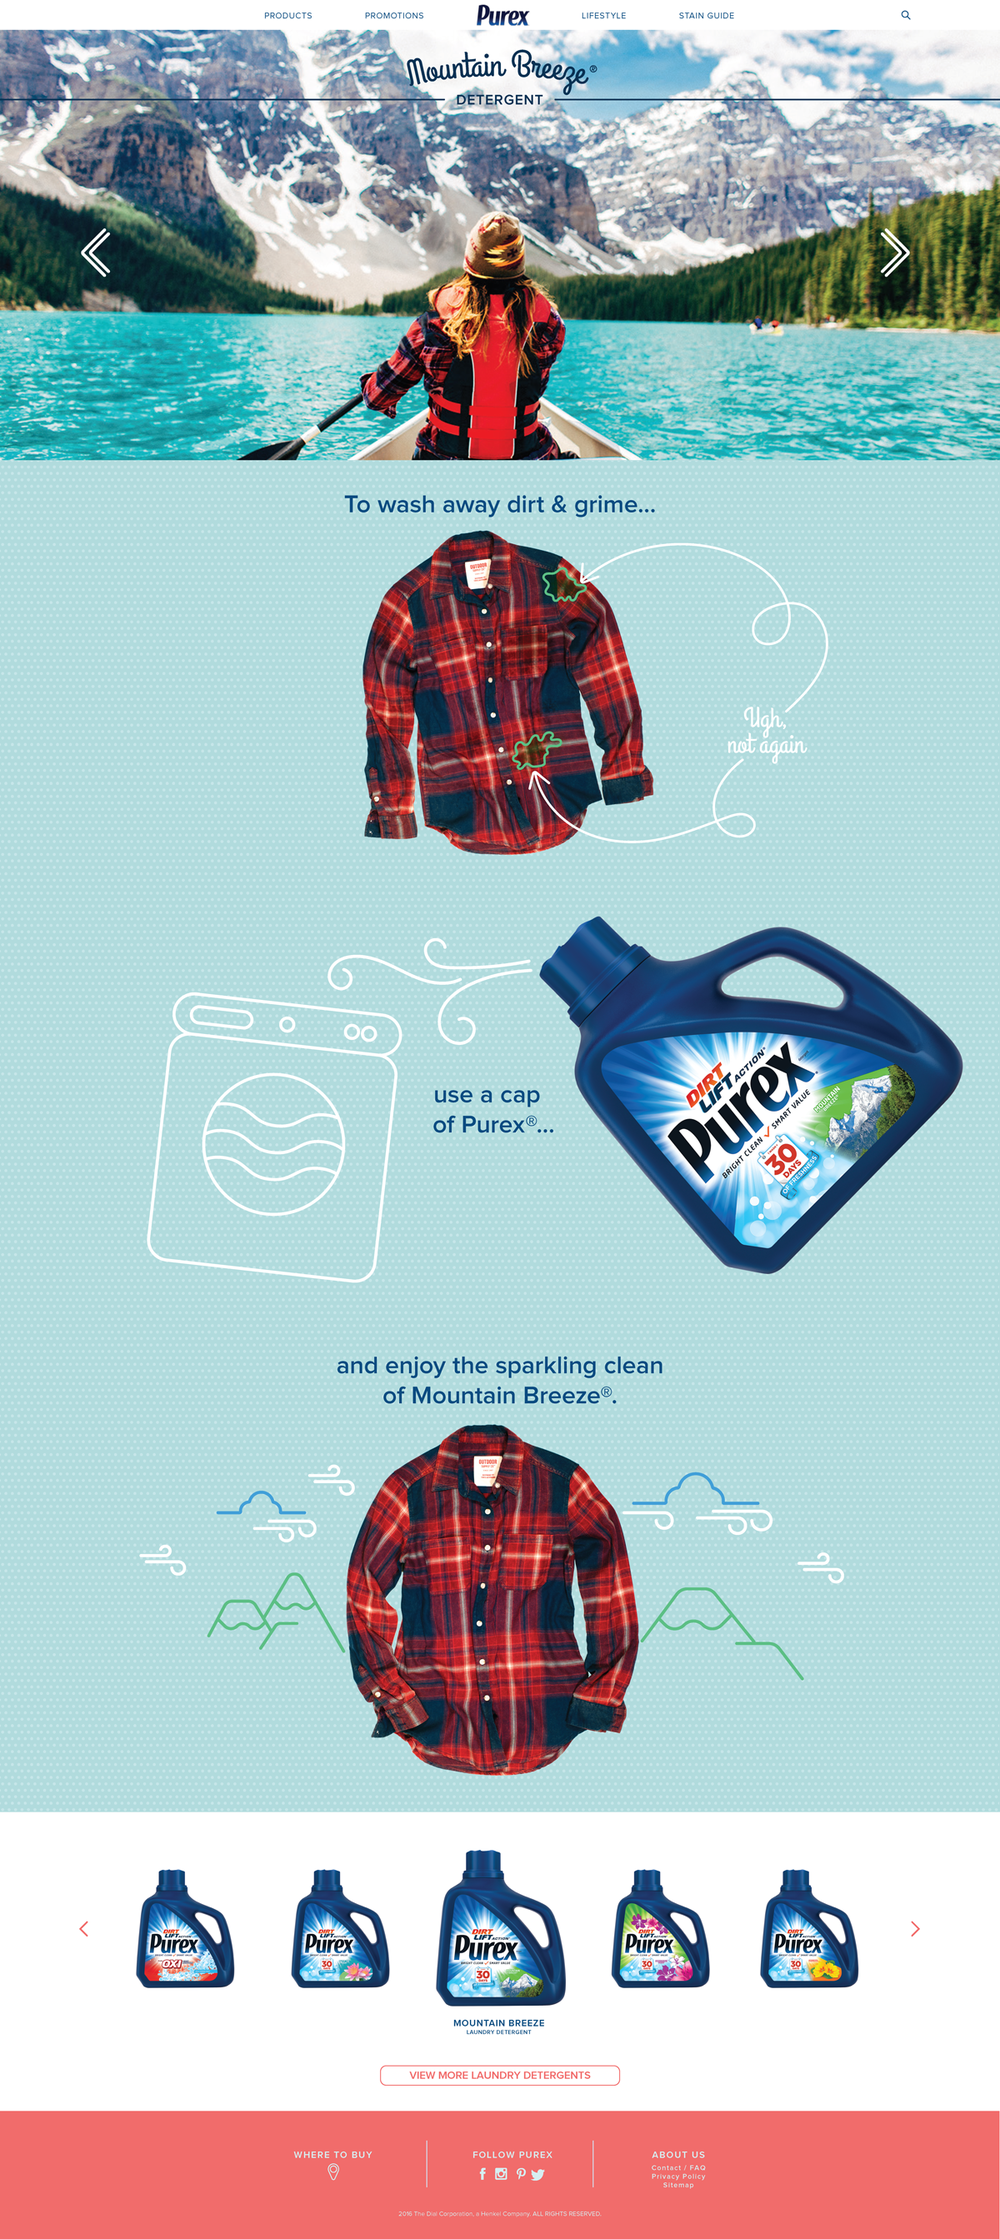 PUREX-website-redesign-v16-June_Page_05-small.png